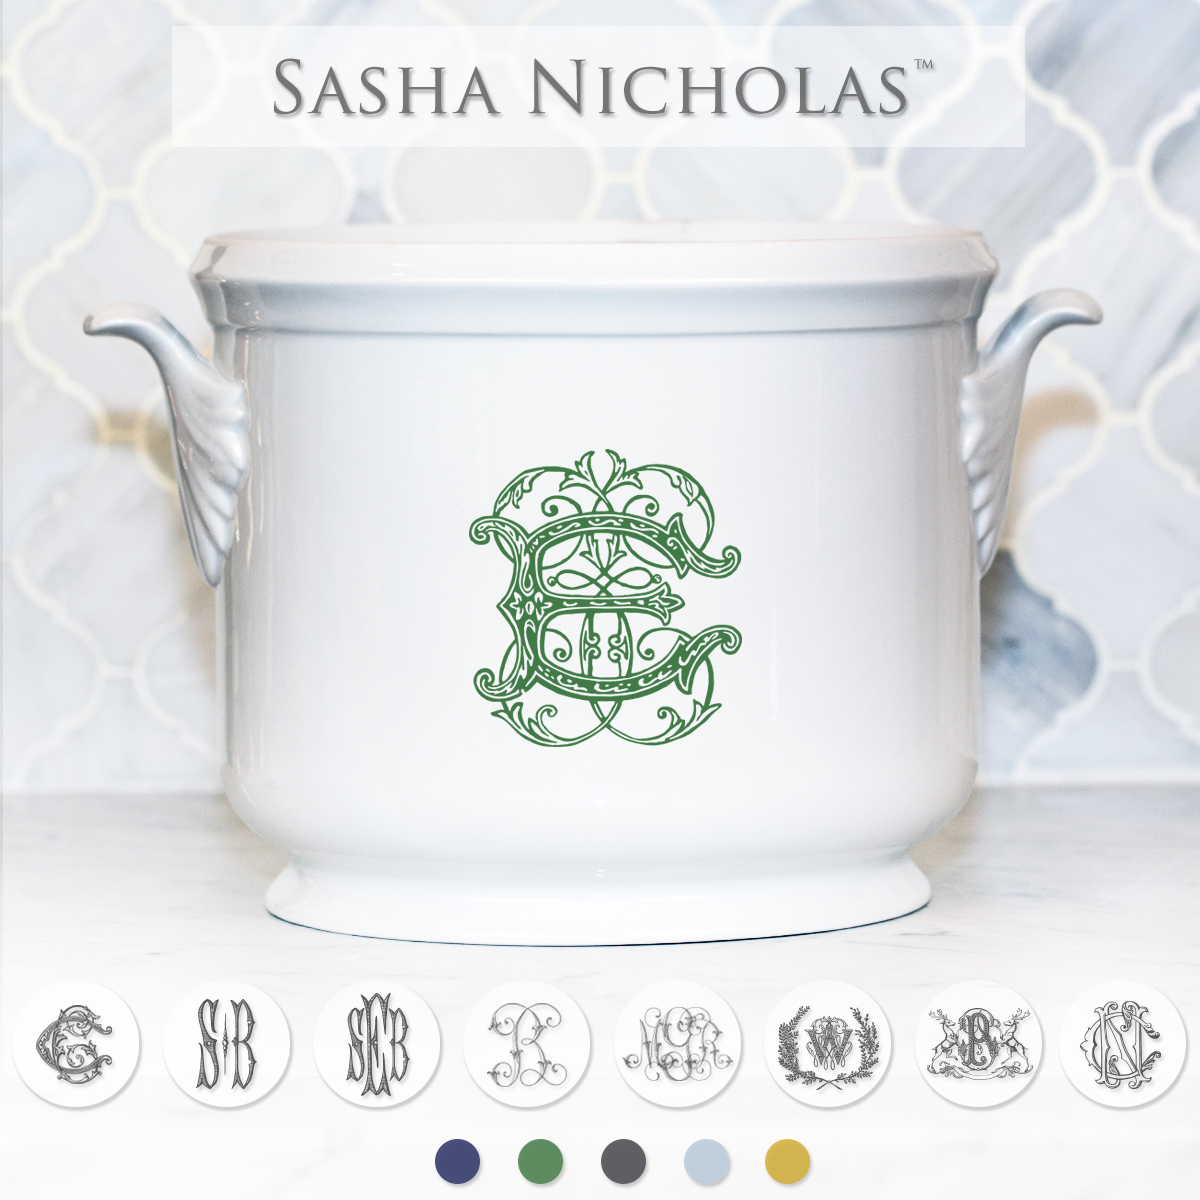 A beautiful addition to your dinnerware collection and to adorn your tablescapes with. It makes the perfect gift for your wedding registry with the included inscription on back. Choose from their signature font styles or use a custom monogram or crest of your choice!   Sasha Nicholas's white porcelain champagne bucket